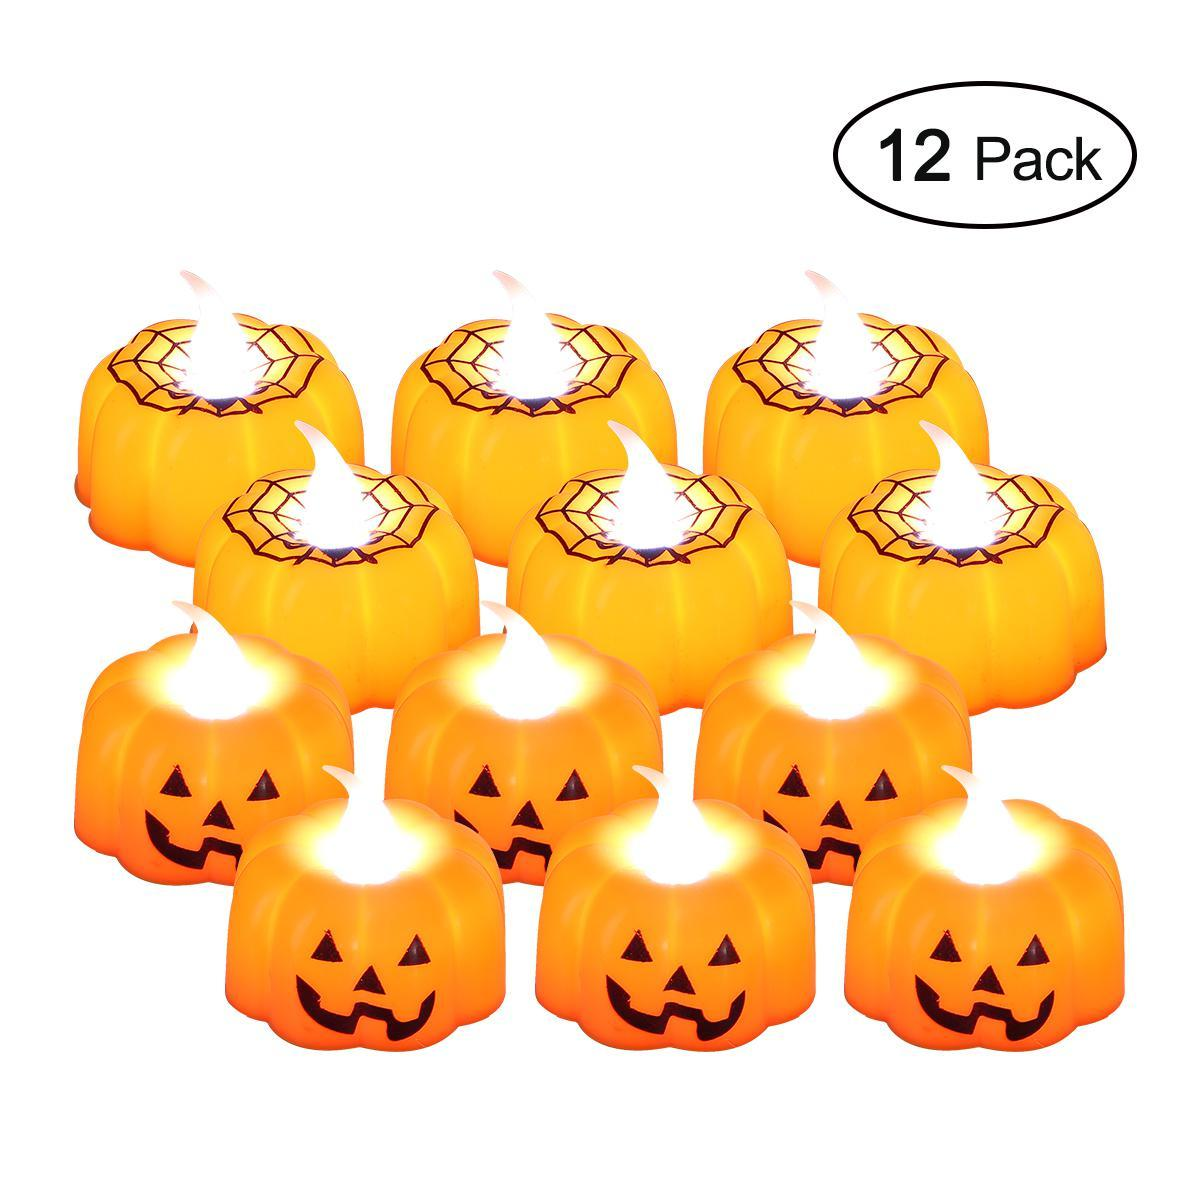 Niceeshop Halloween Candles,12 Pack Led Pumpkin Lights Flickering Flameless Tealight Candles Or Christmas Festival Wedding Parties By Nicee Shop